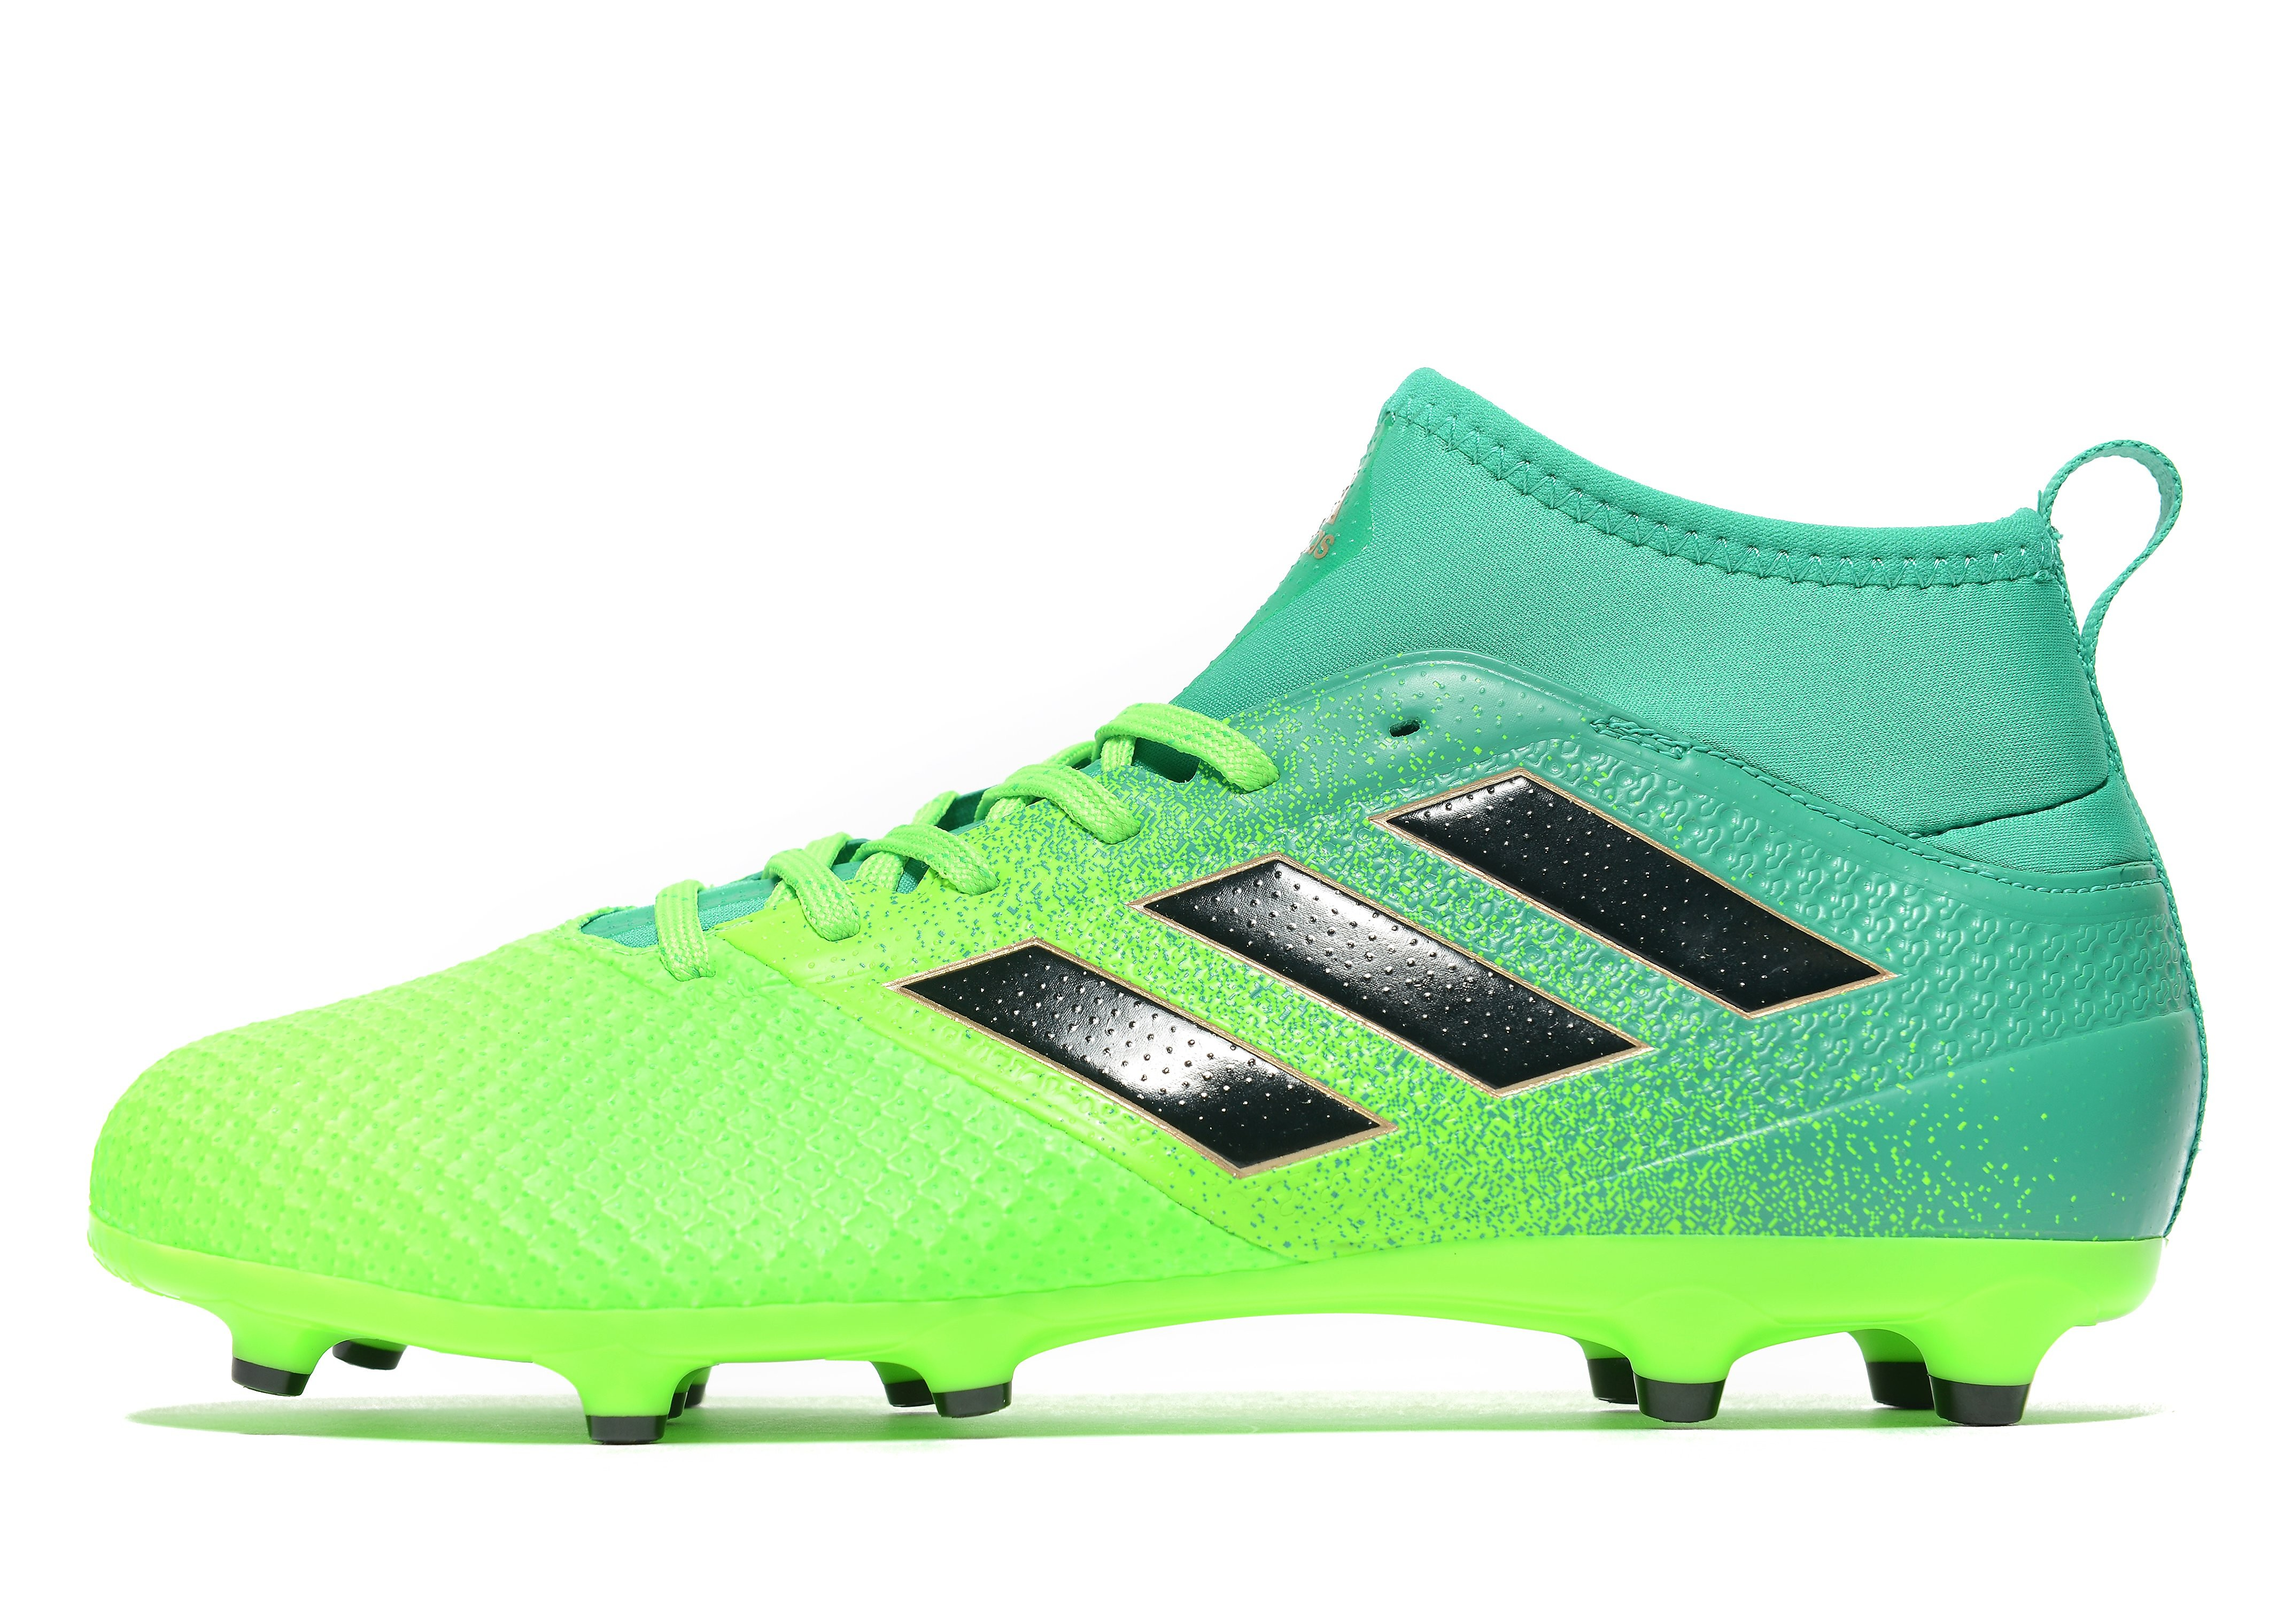 adidas Turbocharged Ace 17.3 Primemesh FG